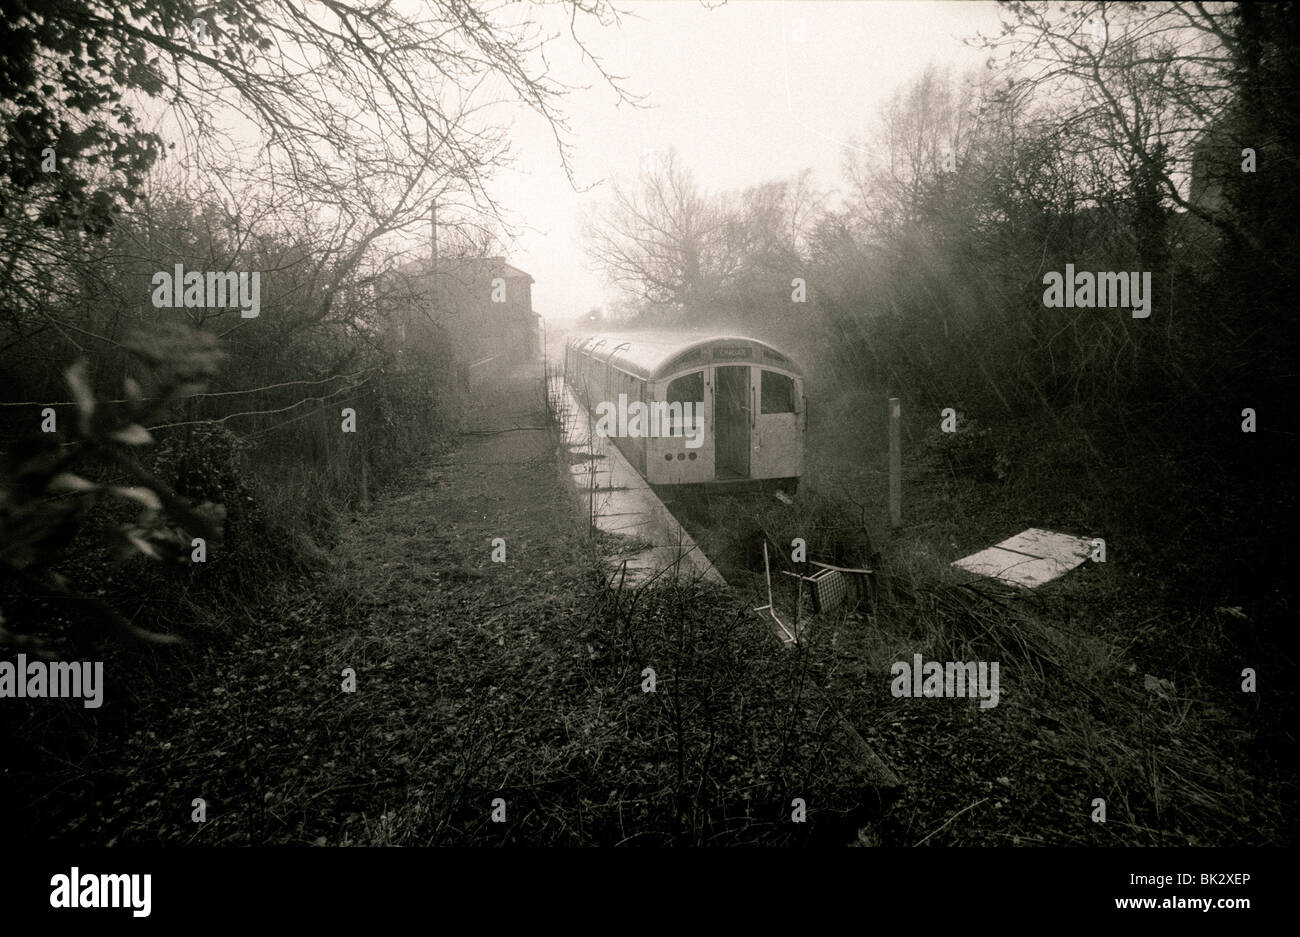 The end of the line for a London Underground tube train seen here sitting in a heavy rain storm at dis used Ongar Stock Photo